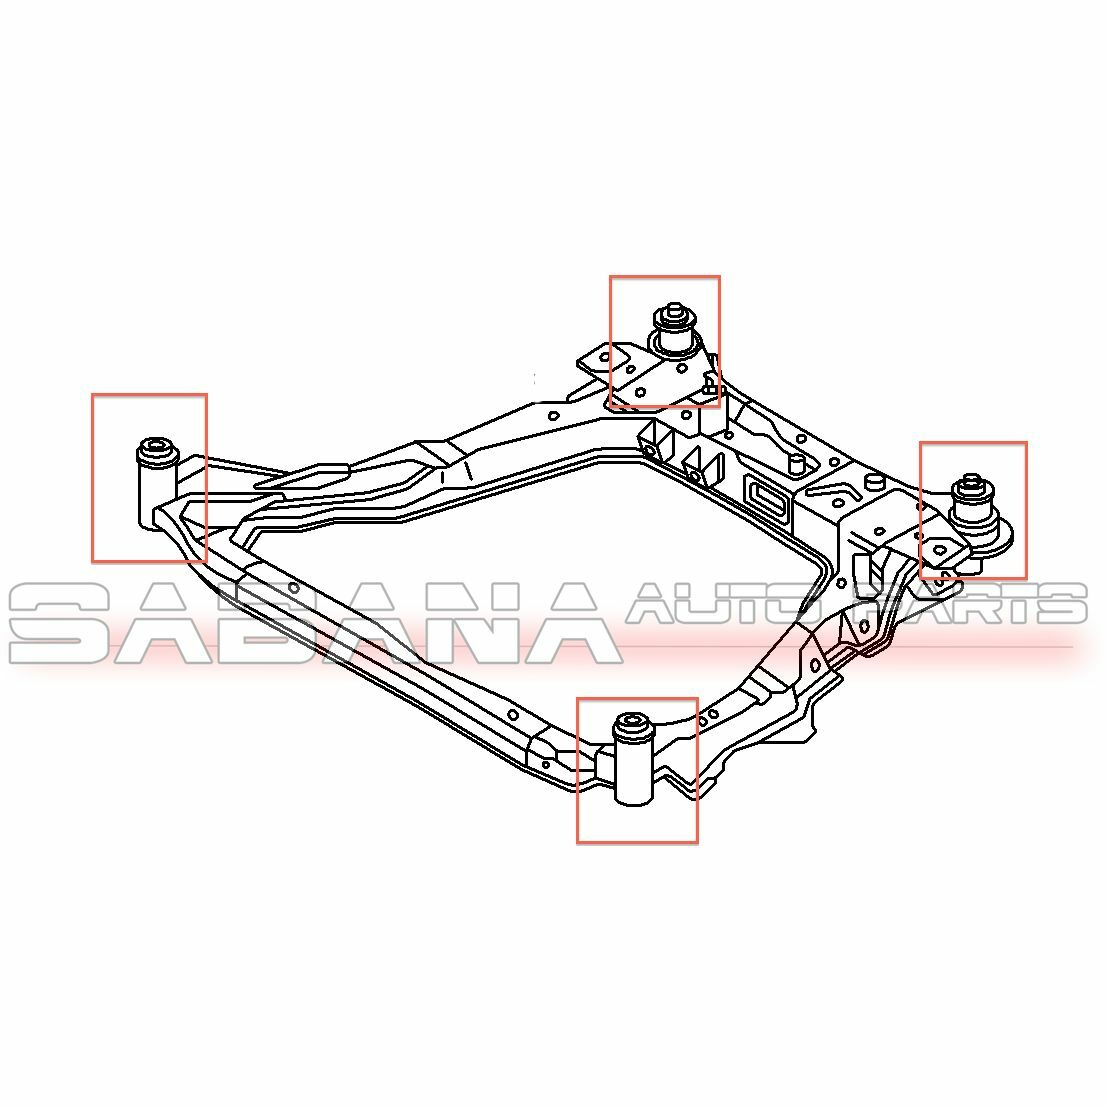 380760 Transmission Sequentronic Wont Shift Gears also Procedures additionally 7g0m0 Kia Rio Lx Pour Gearoil Kia Rio 1 4 additionally Ford Model T also T5 transmission. on automatic transmission